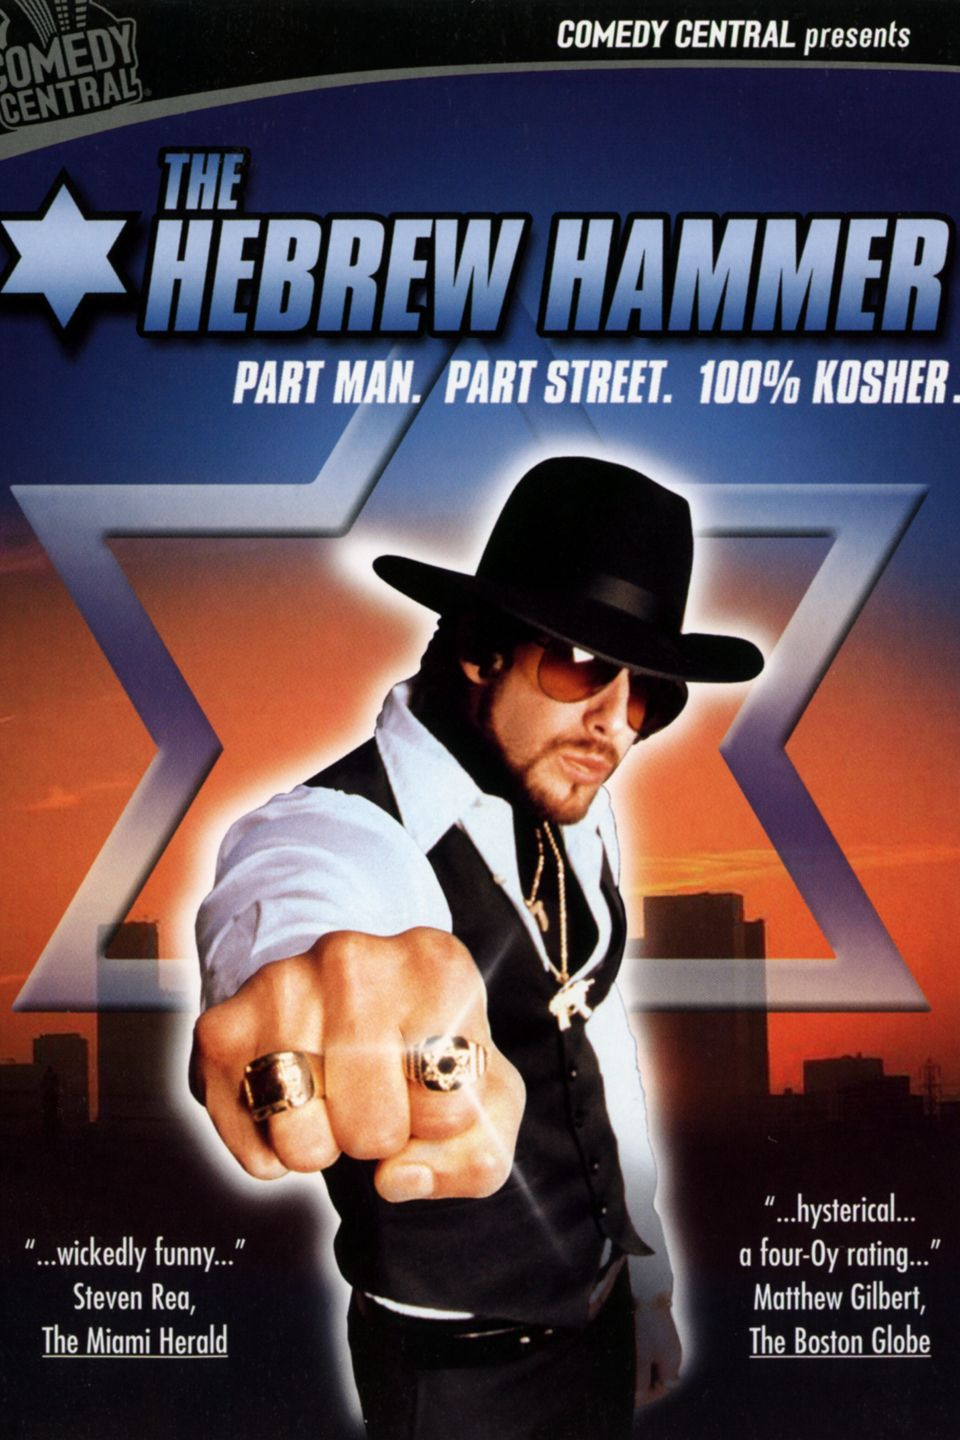 The Hebrew Hammer - another one to be embarrassed that I've seen...